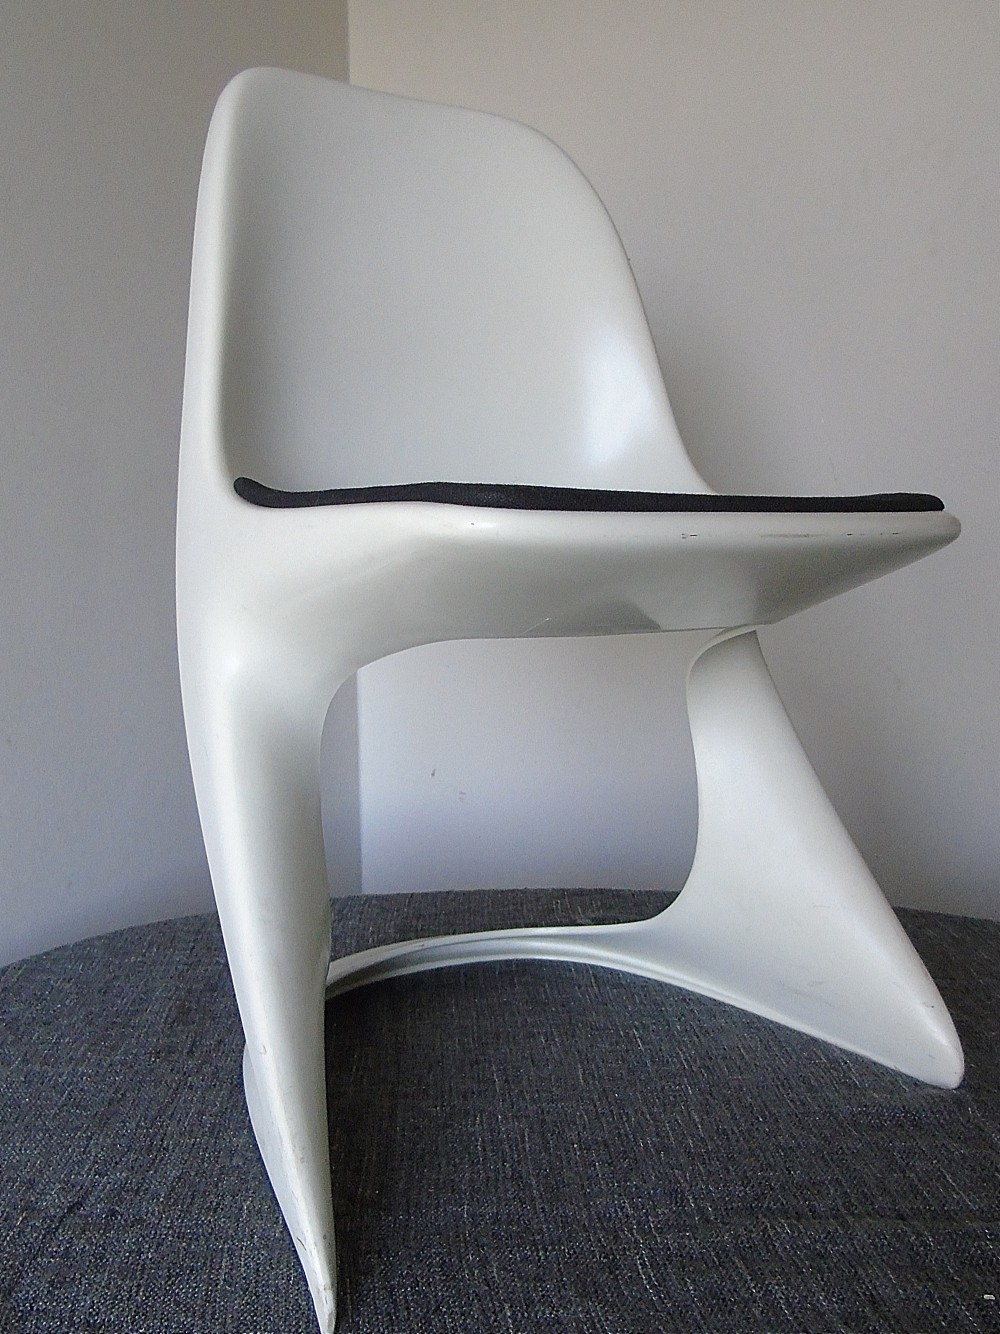 20 x Cassalino dining chair by Alexander Begge for Casala, 1970s